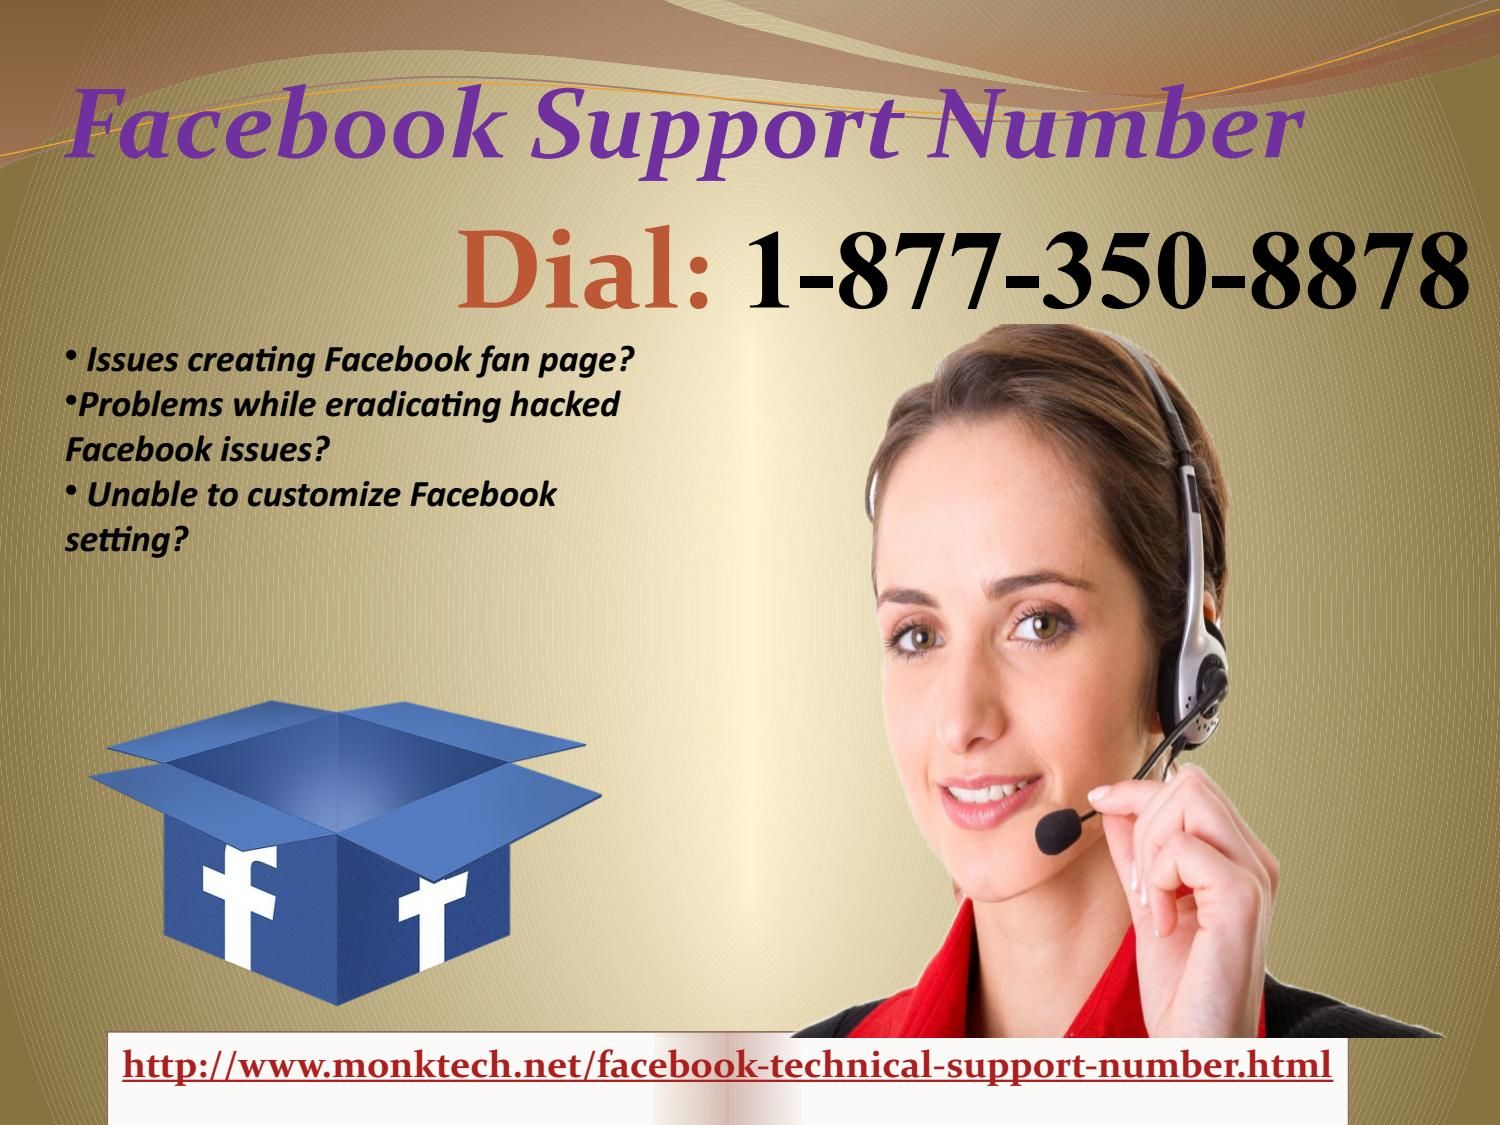 Upsurge Facebook Follower By Obtaining 1 877 350